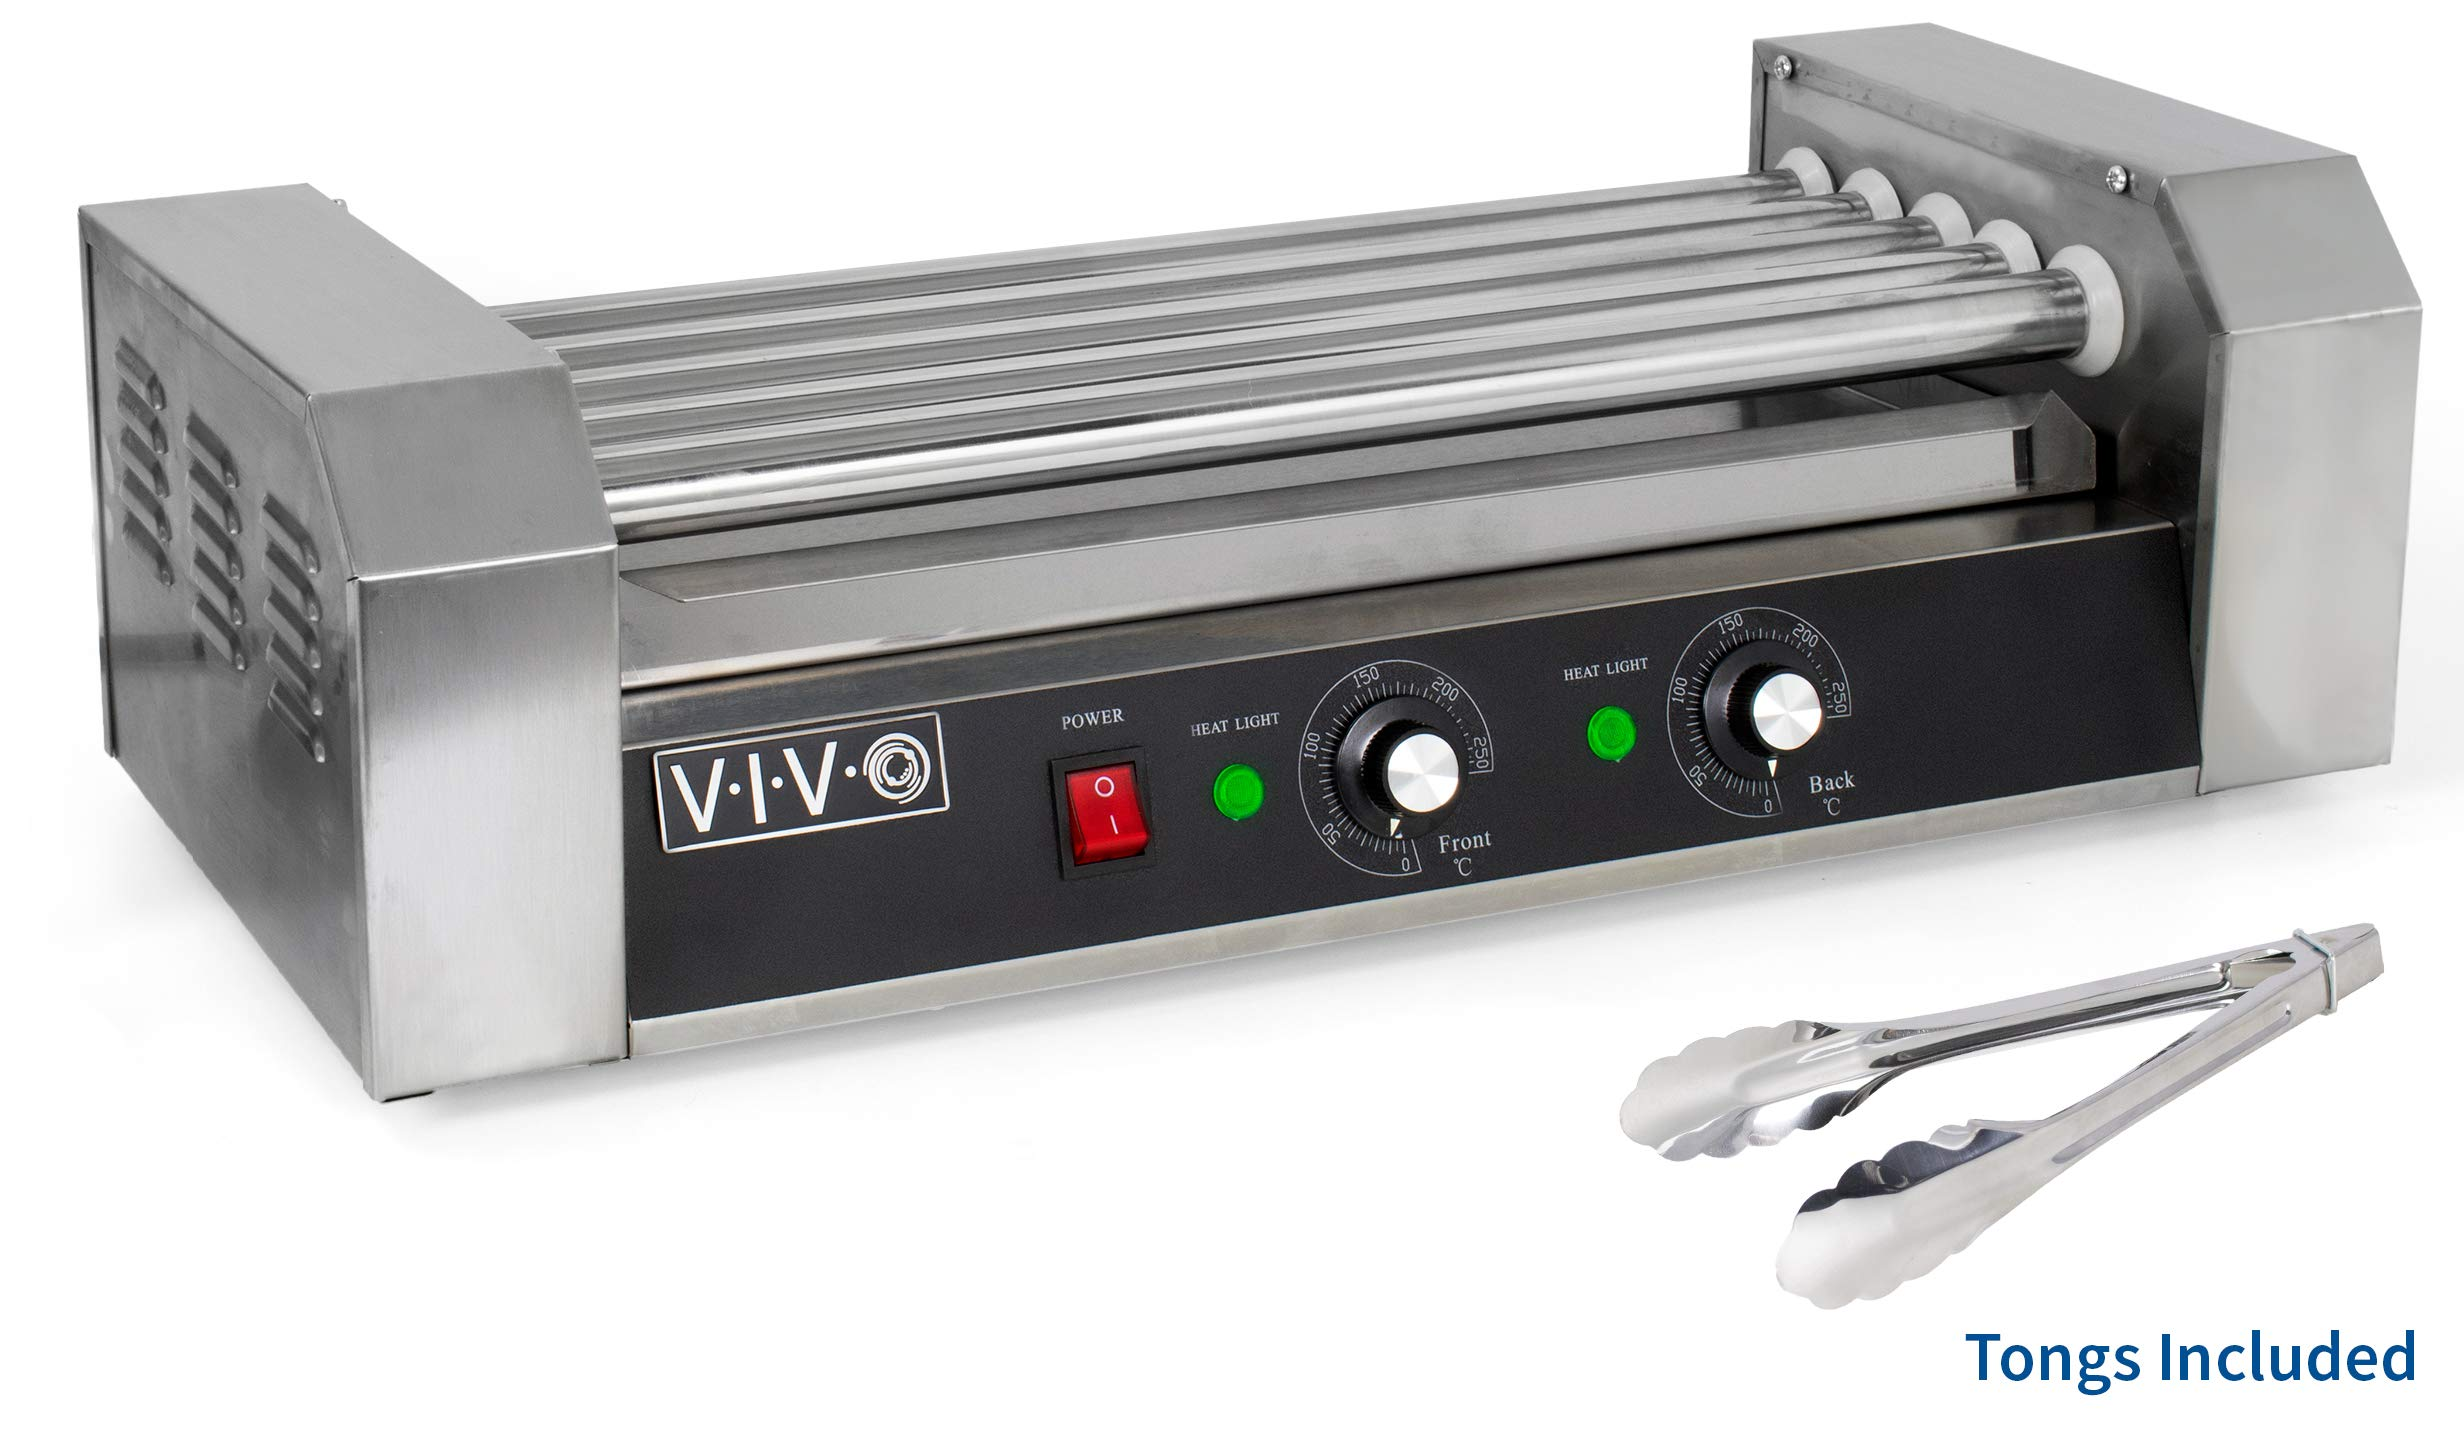 VIVO Electric 12 Hot Dog and 5 Roller Grill Cooker Warmer   Cooker Machine (HOTDG-V005) by VIVO